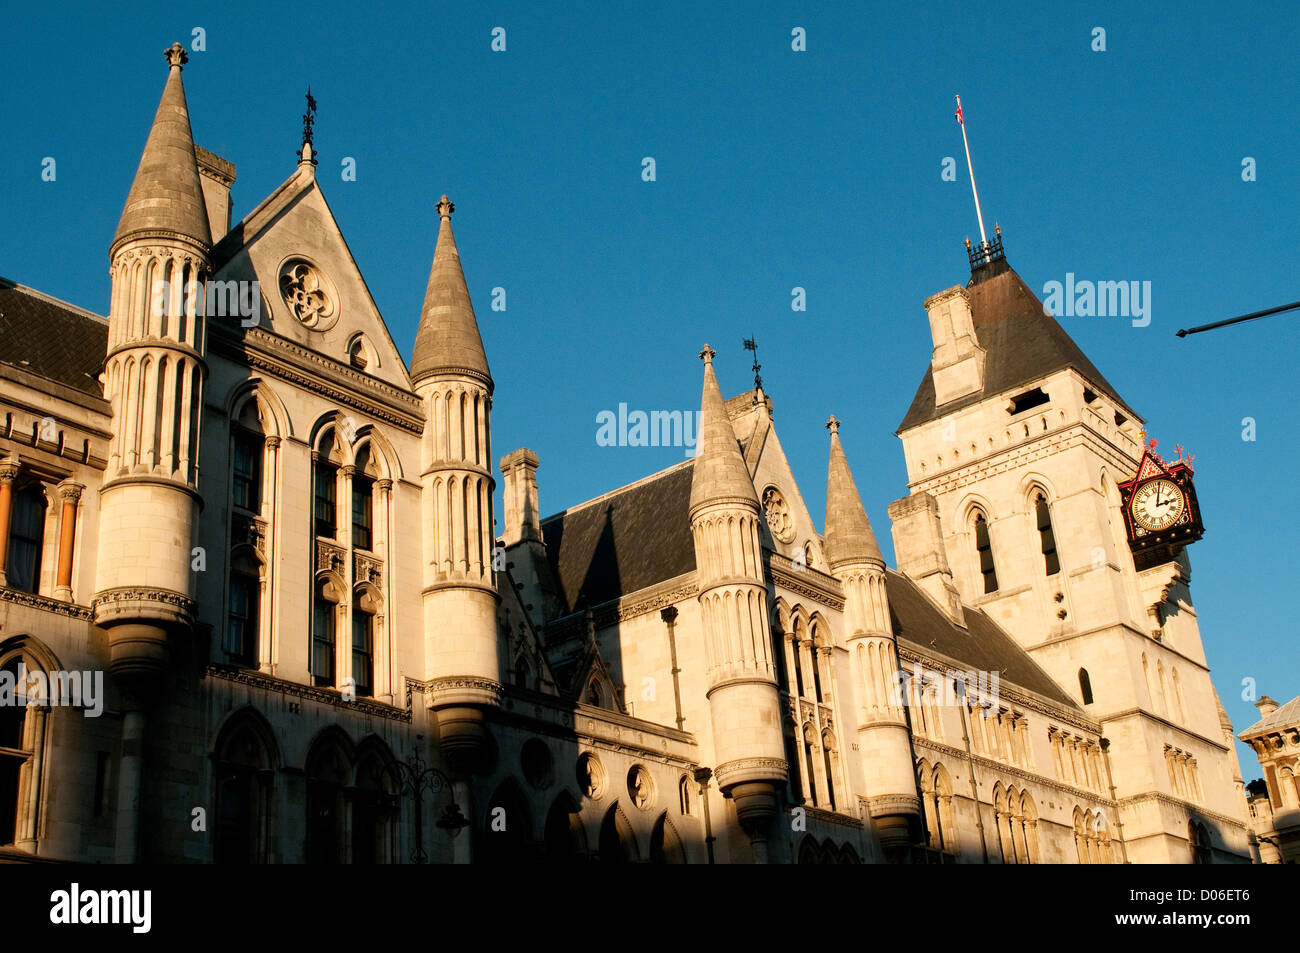 Royal Courts of Justice or Law Courts, London, UK - Stock Image